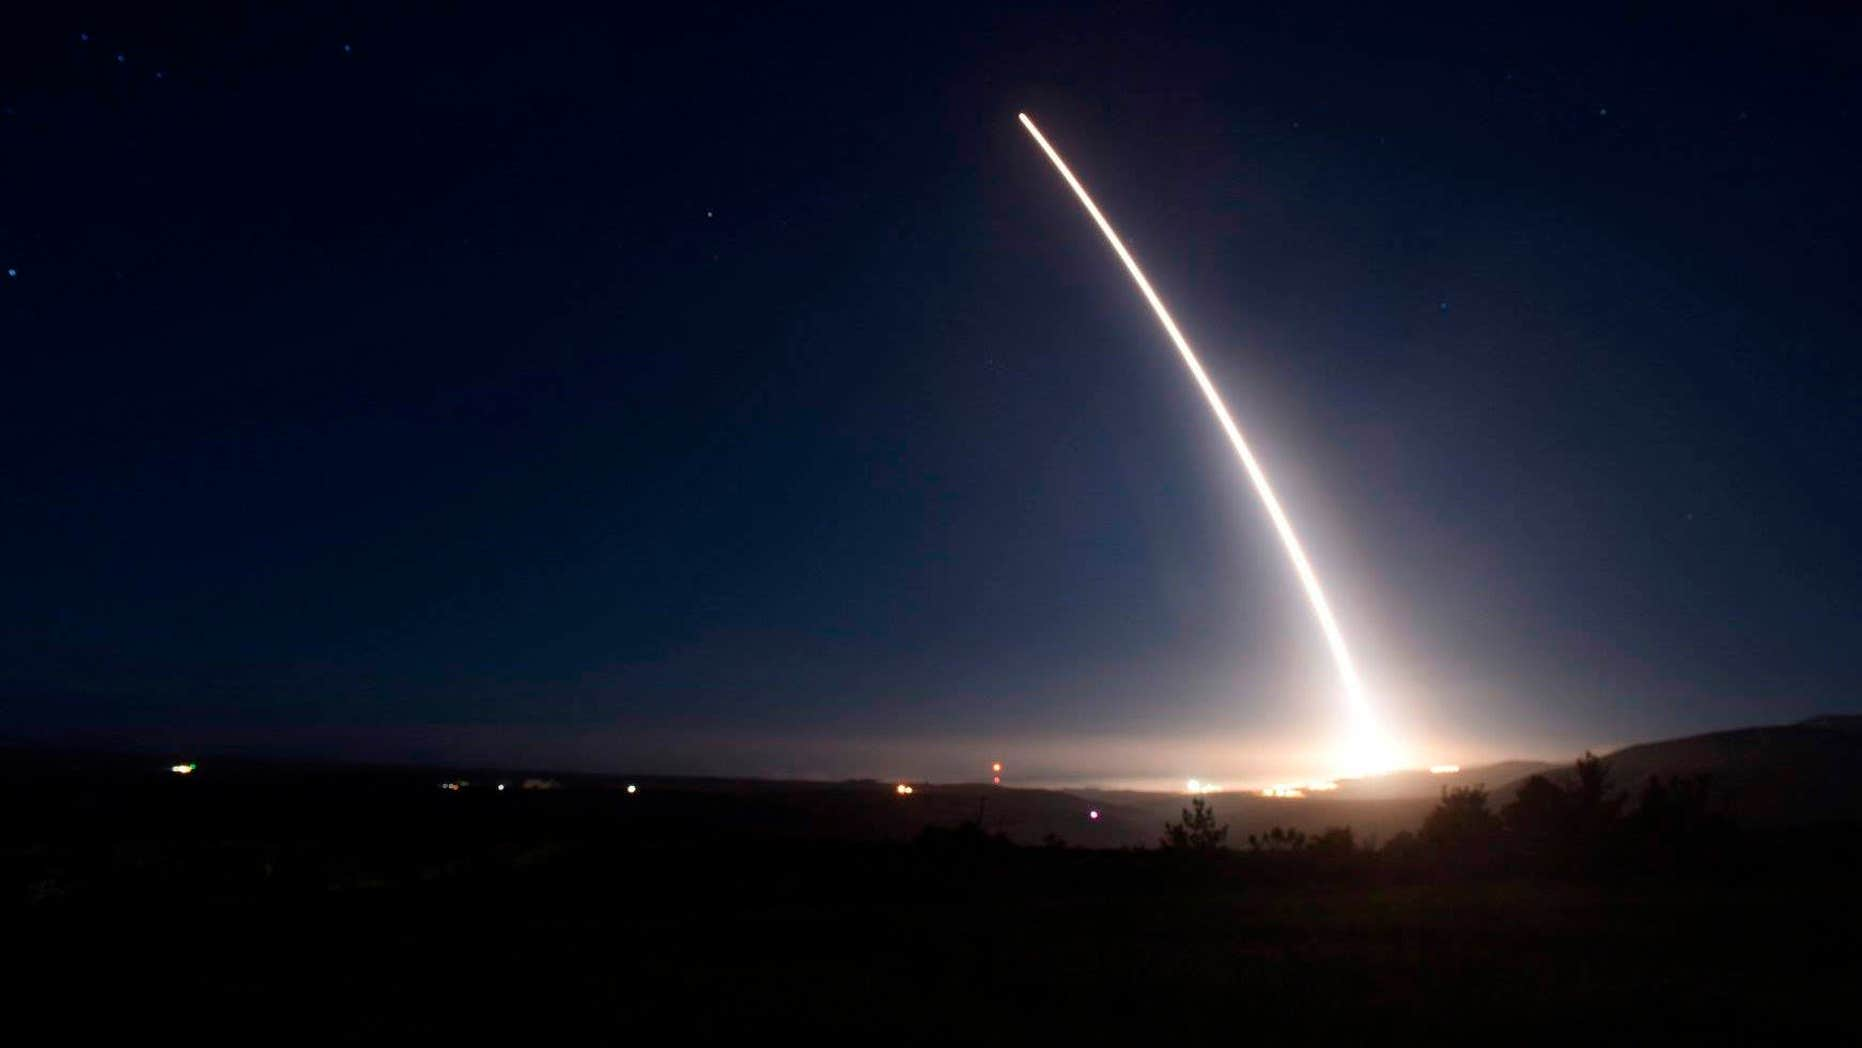 FILE - In this Saturday, Feb. 20, 2016 file photo provided by U.S. Air Force, an unarmed Minuteman III intercontinental ballistic missile launches during an operational test at Vandenberg Air Force Base, Calif.